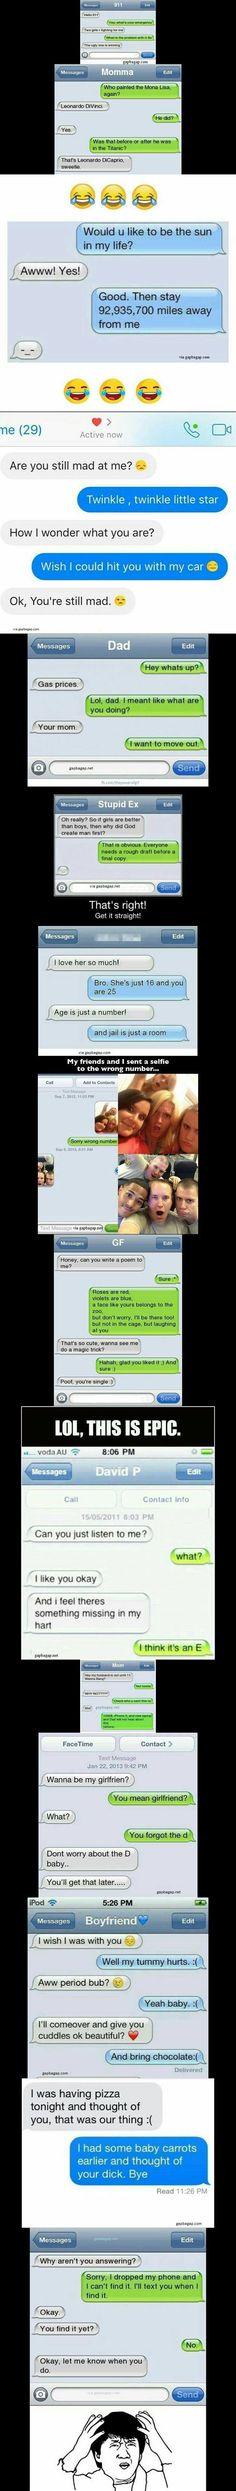 Top 15 Funniest Text Messages